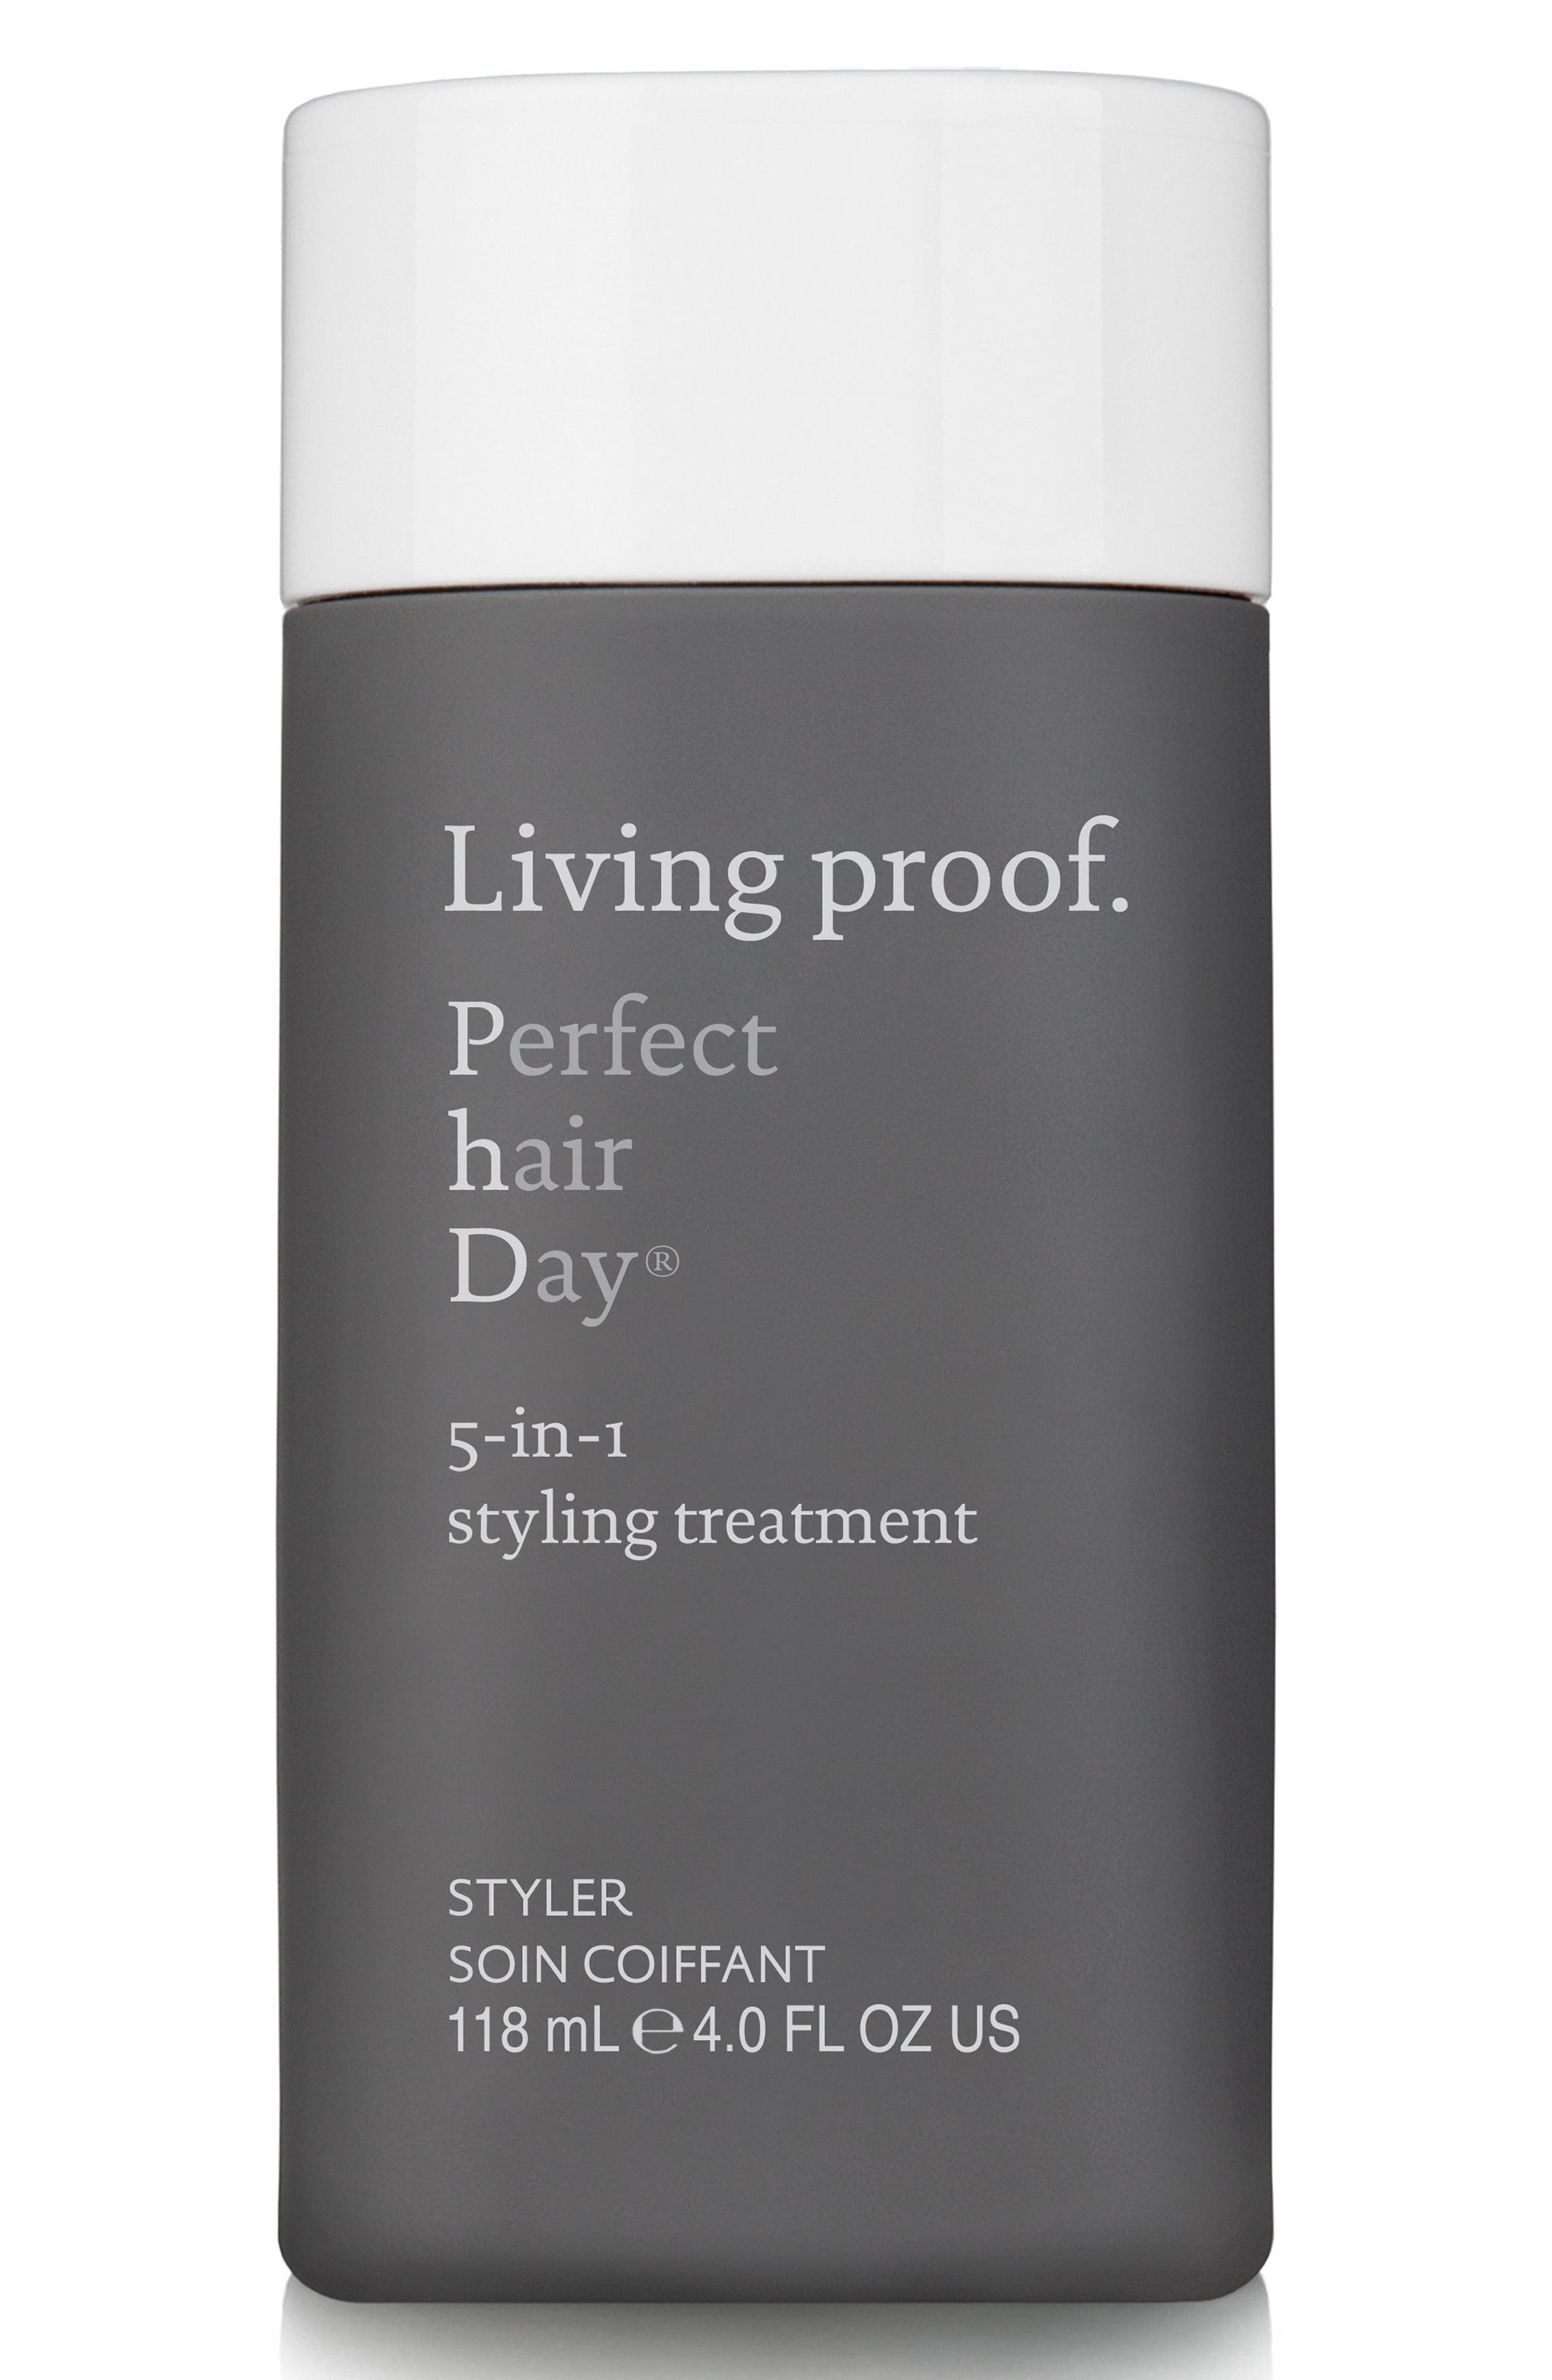 Living proof® Perfect hair Day™ 5-in-1 Styling Treatment